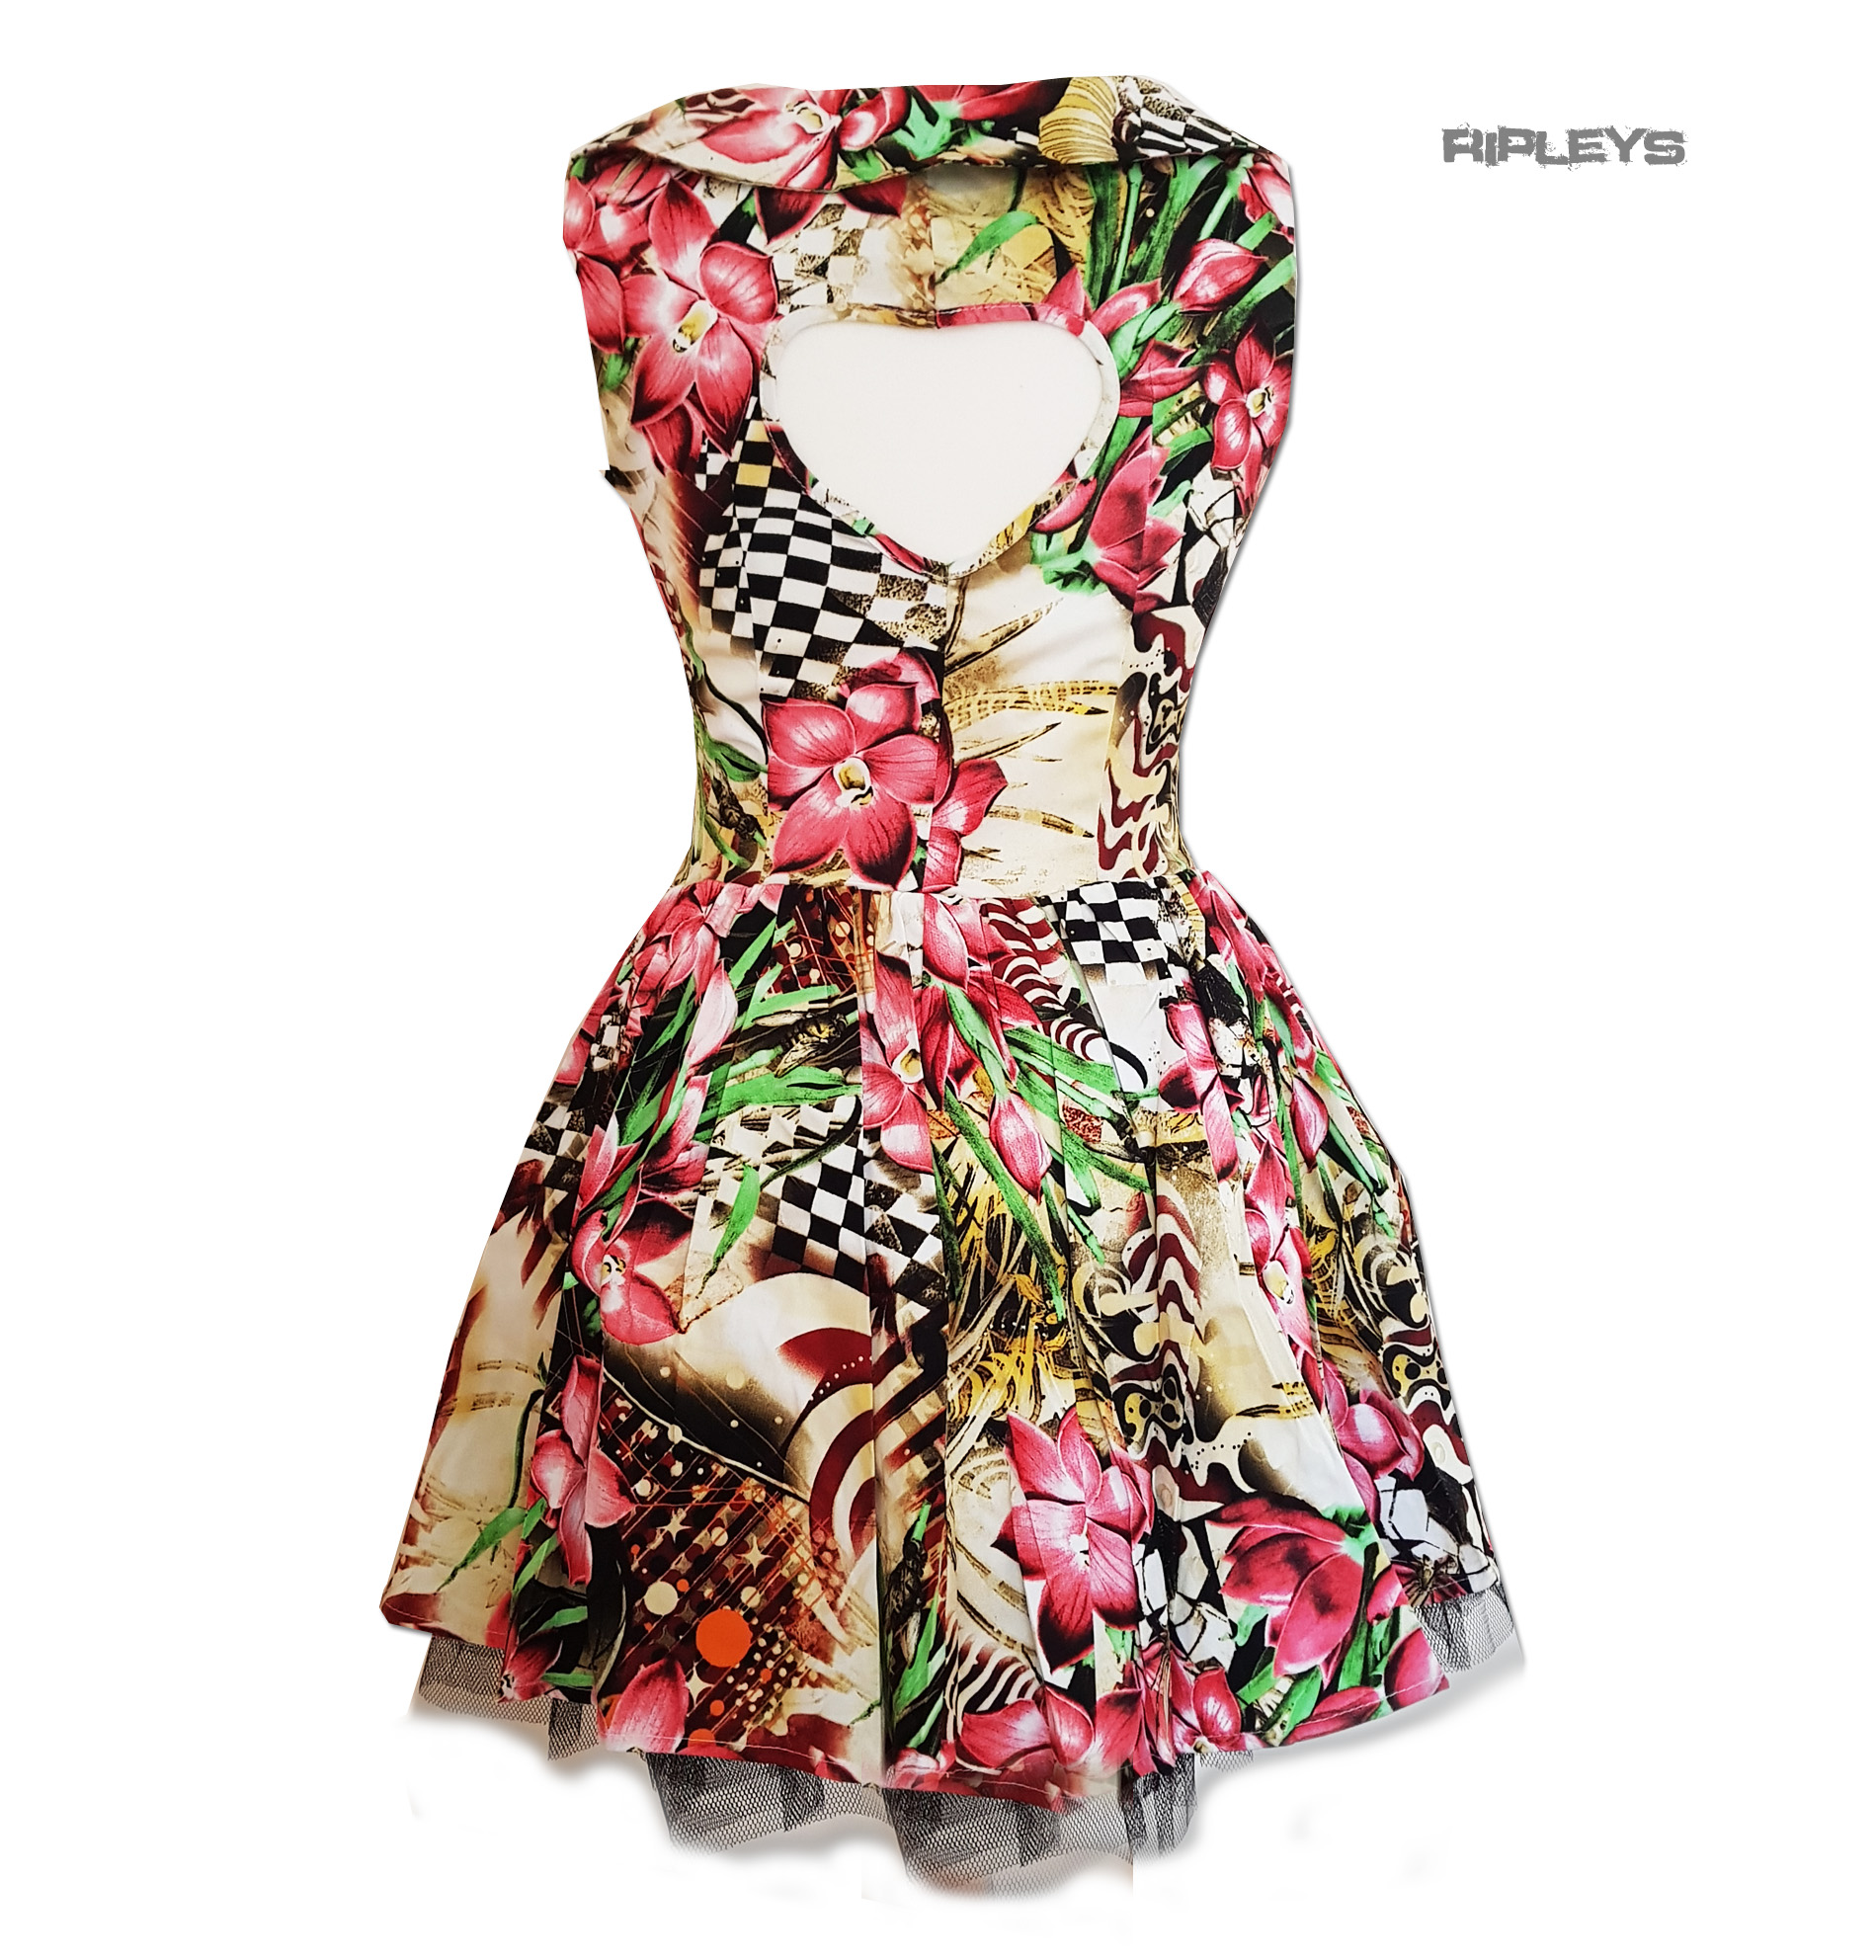 H-amp-R-Hearts-amp-Roses-London-Pink-Mini-Dress-039-Lily-Checkerboard-039-Flowers-All-Sizes thumbnail 4